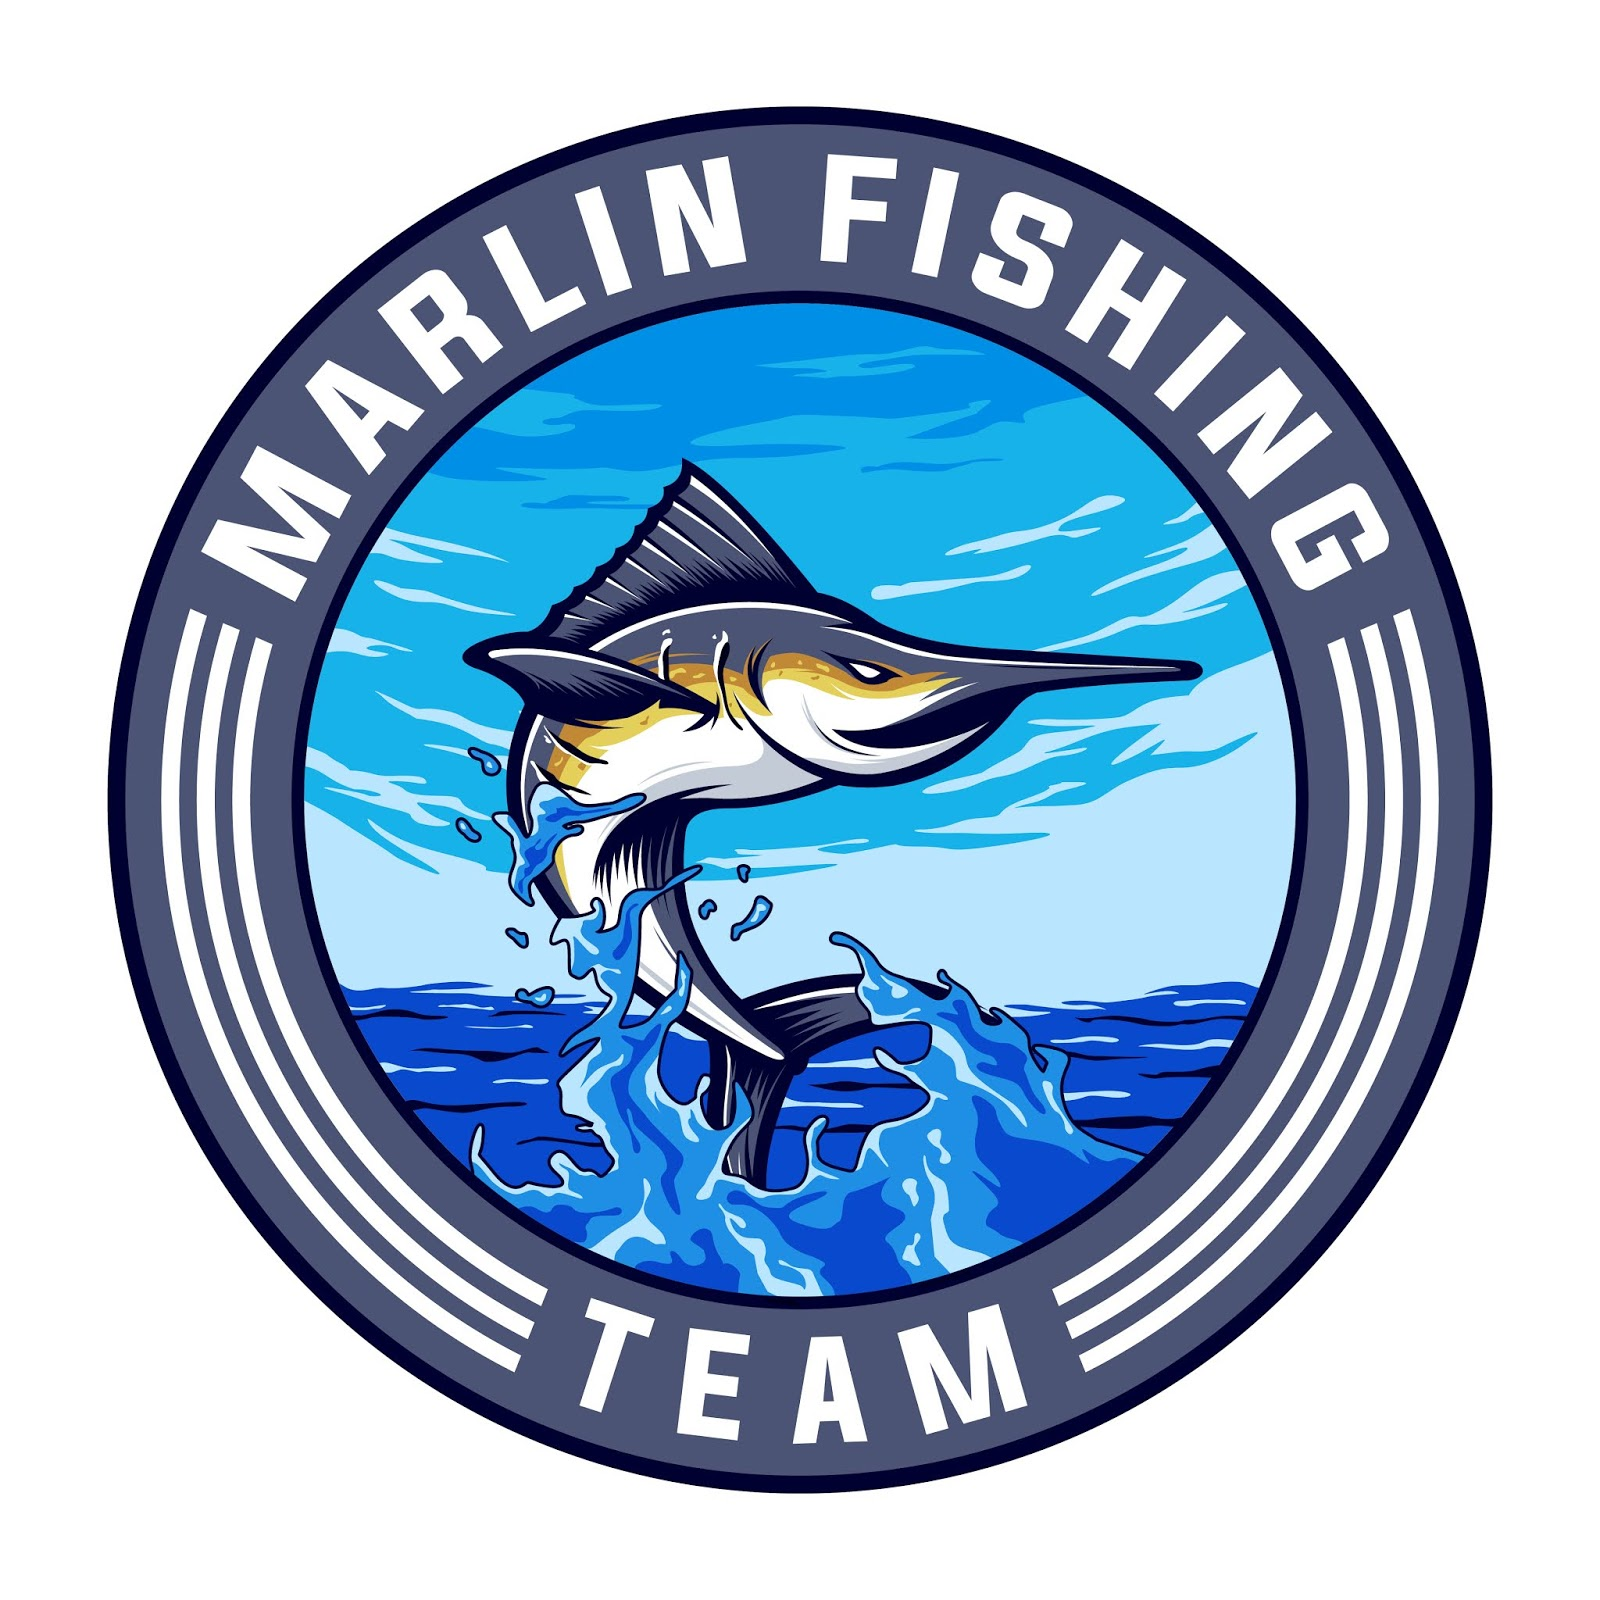 Marlin Sport Team Logo Design Free Download Vector CDR, AI, EPS and PNG Formats